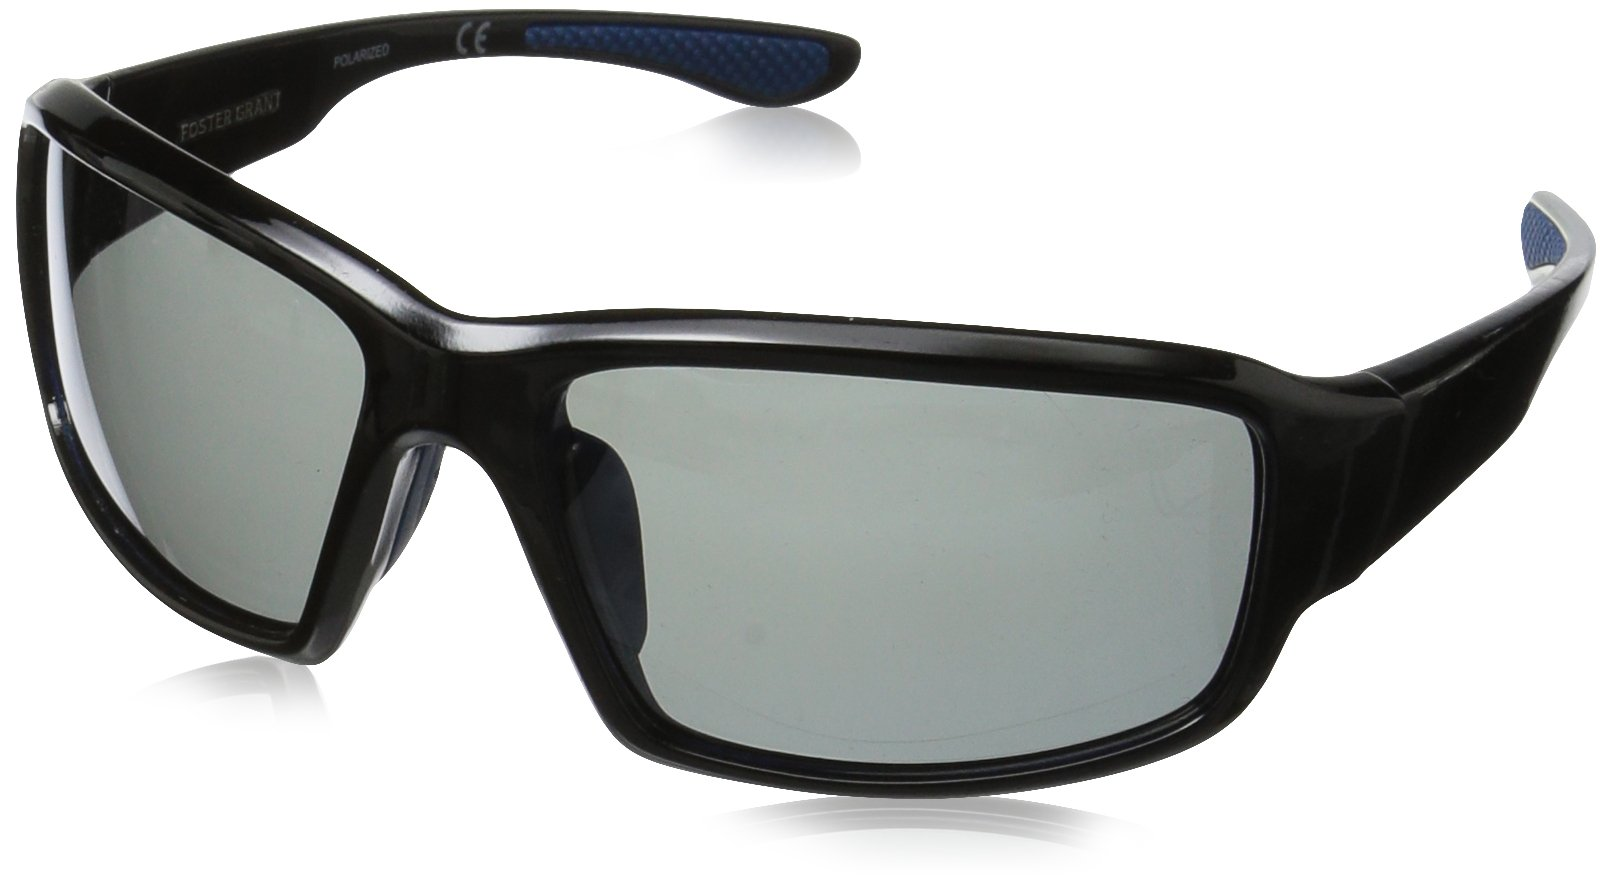 Foster Grant Men's Adrift Polarized Rectangular Sunglasses, Black, 174 mm by Foster Grant